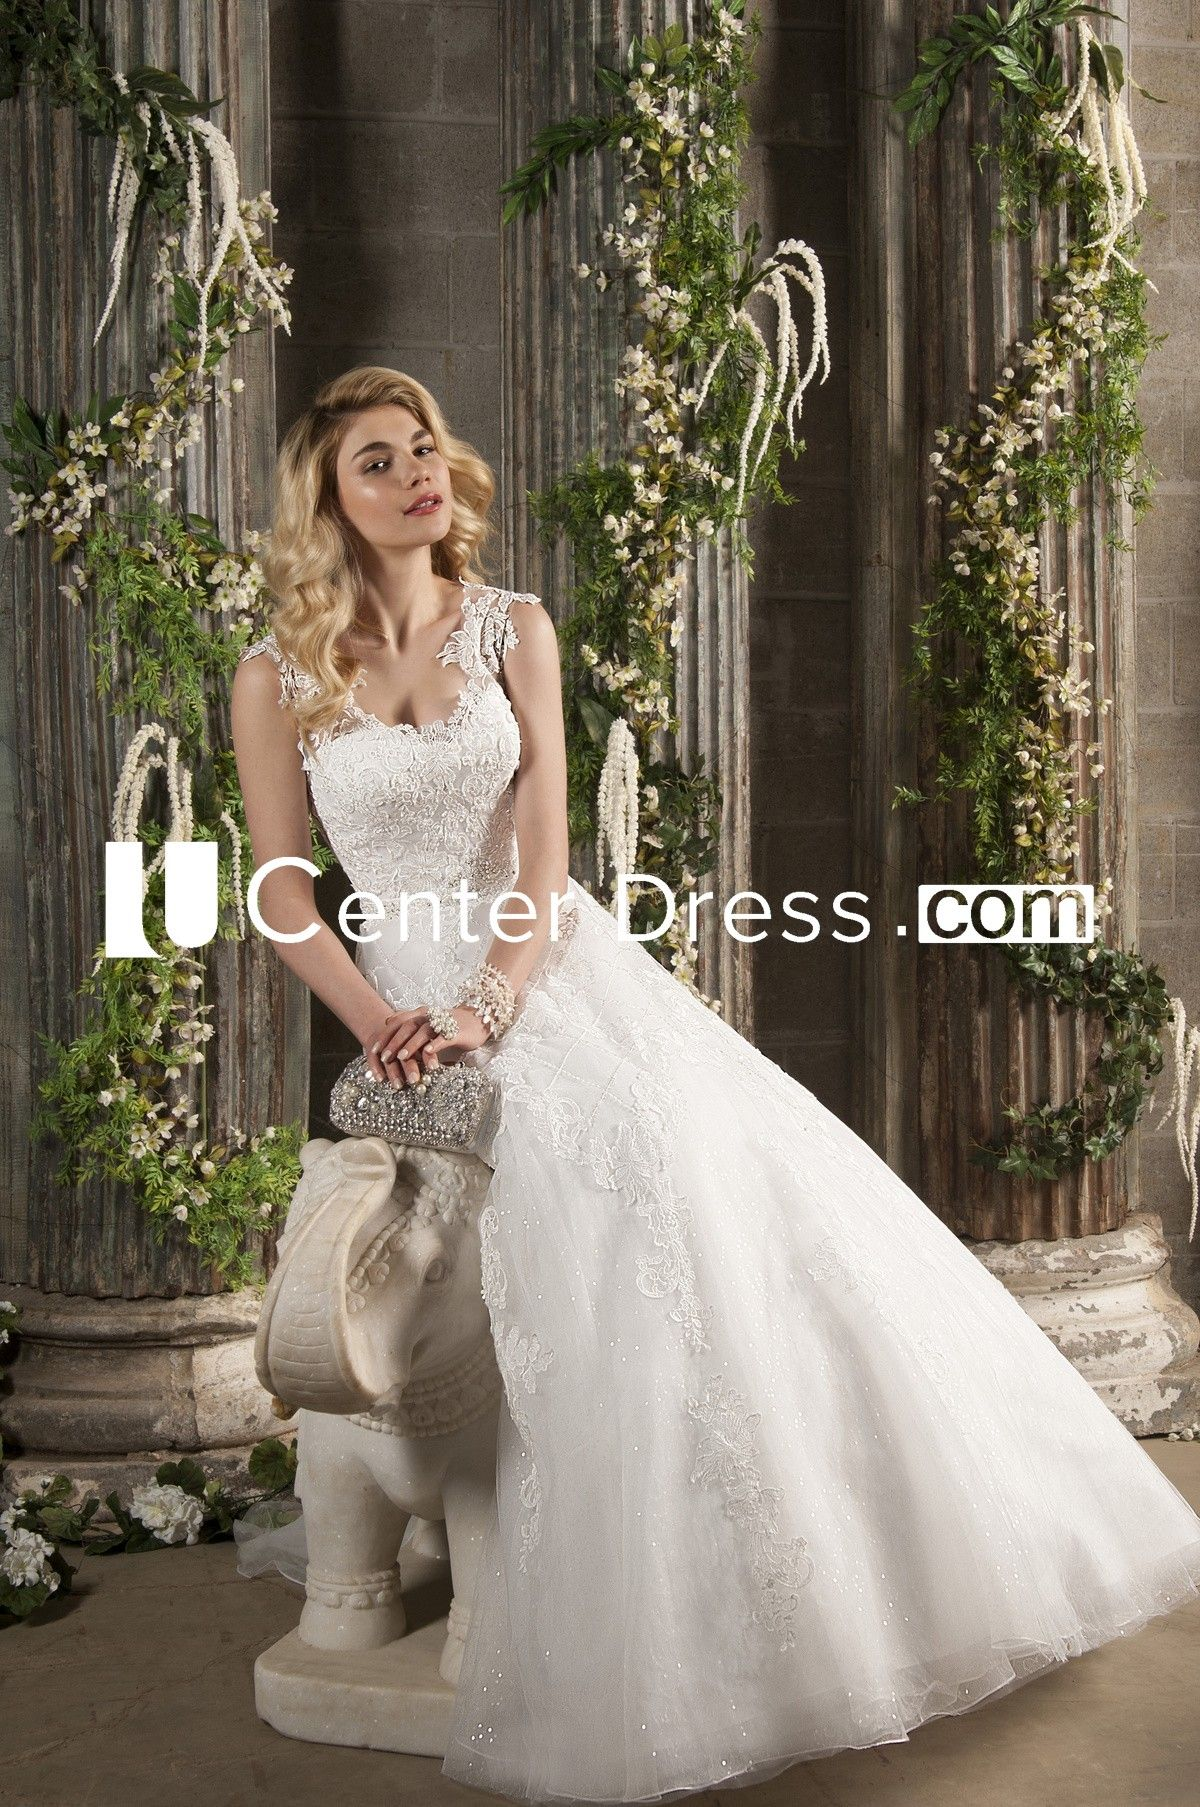 45e2a347613  153.19-Delicate Maxi V-Neck Sleeveless Appliqued Lace Ball Gown Wedding  Dress. http